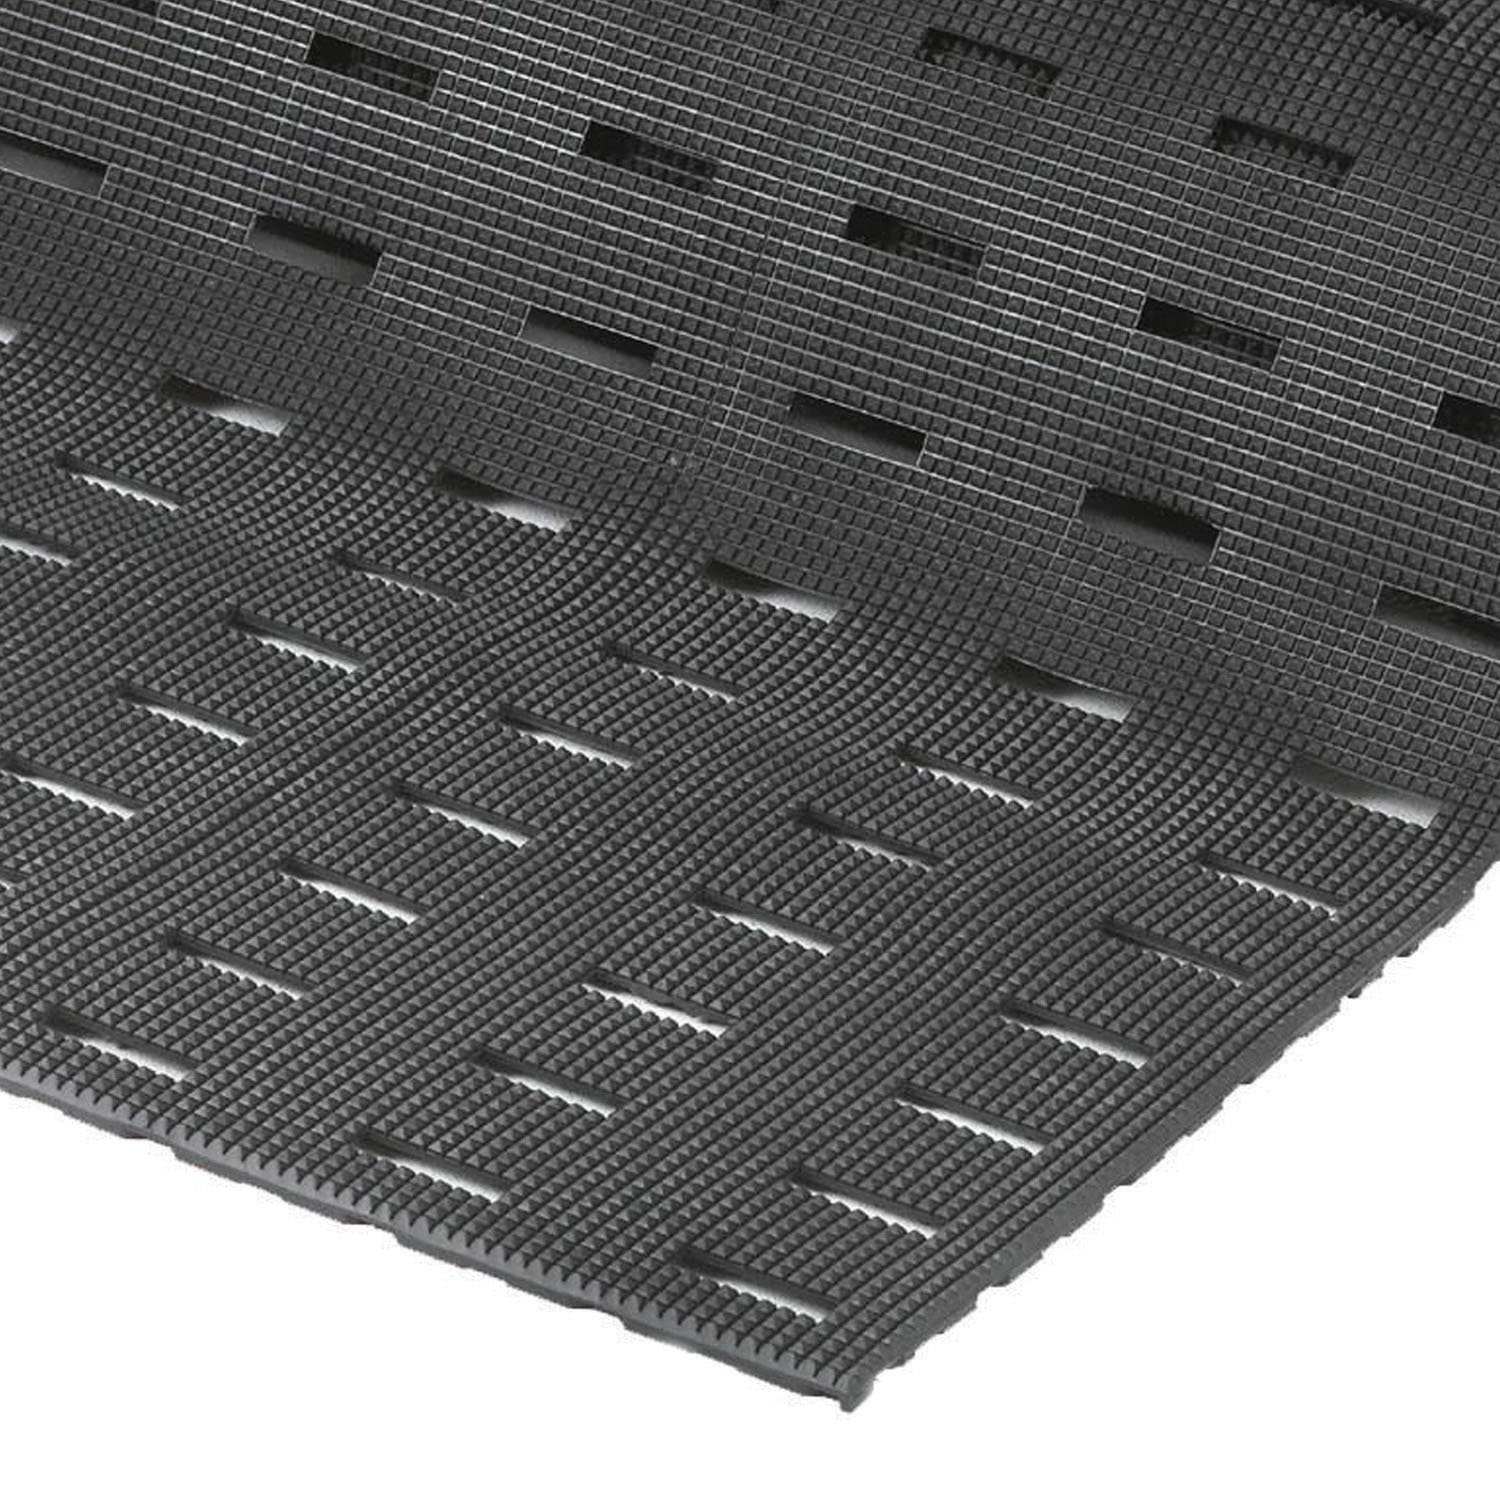 NoTrax Vinyl 420 Cushion-Dek Anti-Fatigue Drainage Mat, for Wet Areas, 3' Width x 10' Length x 7/16'' Thickness, Black